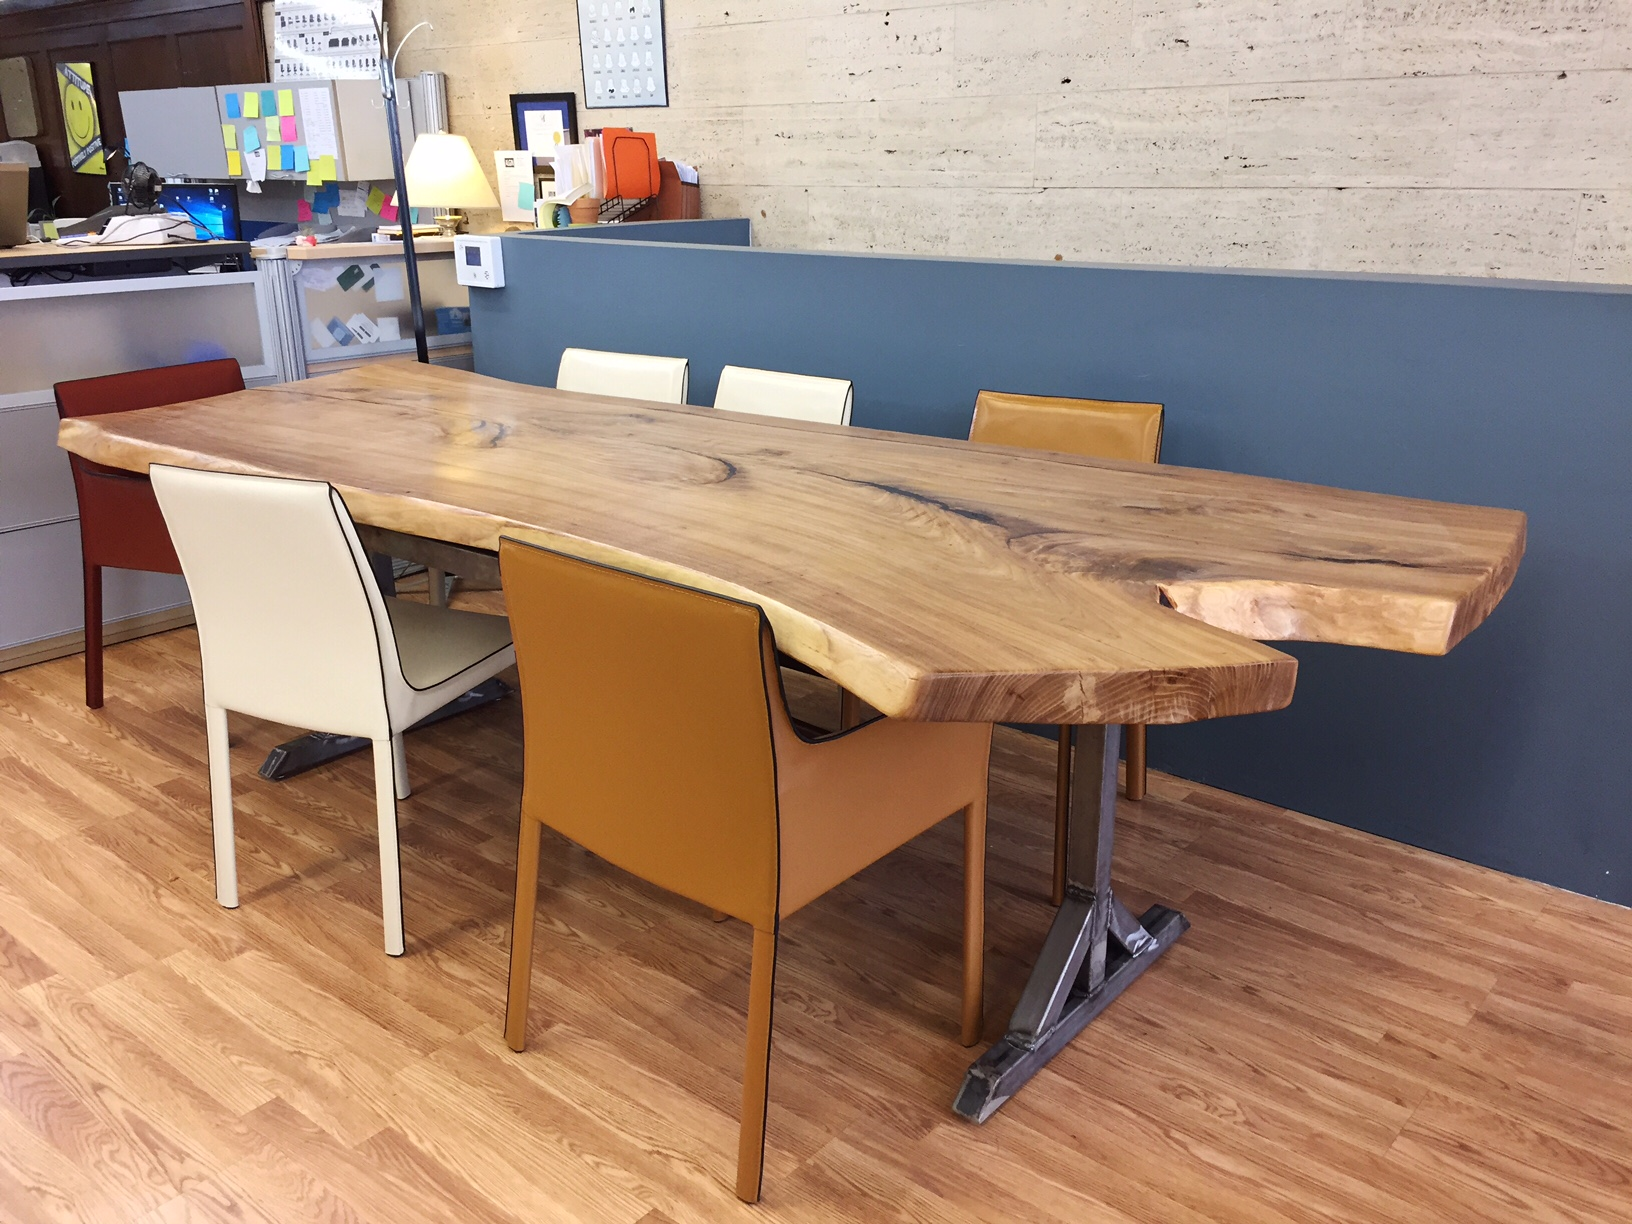 Live Edge Elm Dining Table on Custom Metal Base